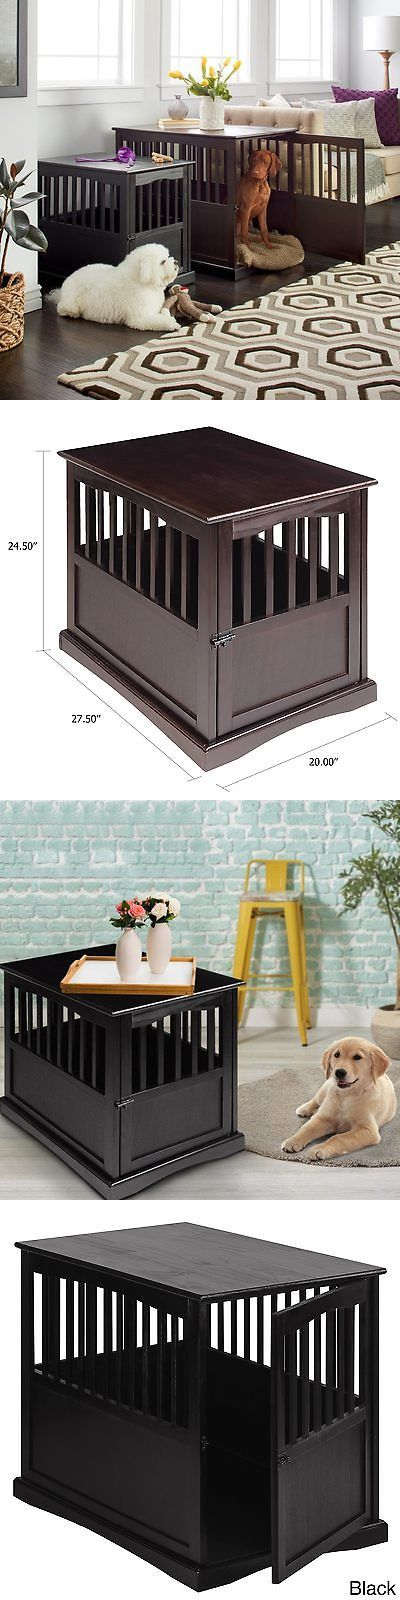 Cages and Crates 121851: Wooden Furniture End Table Pet Crate Small Black Cage Kennel Décor Indoor New -> BUY IT NOW ONLY: $97.82 on eBay!